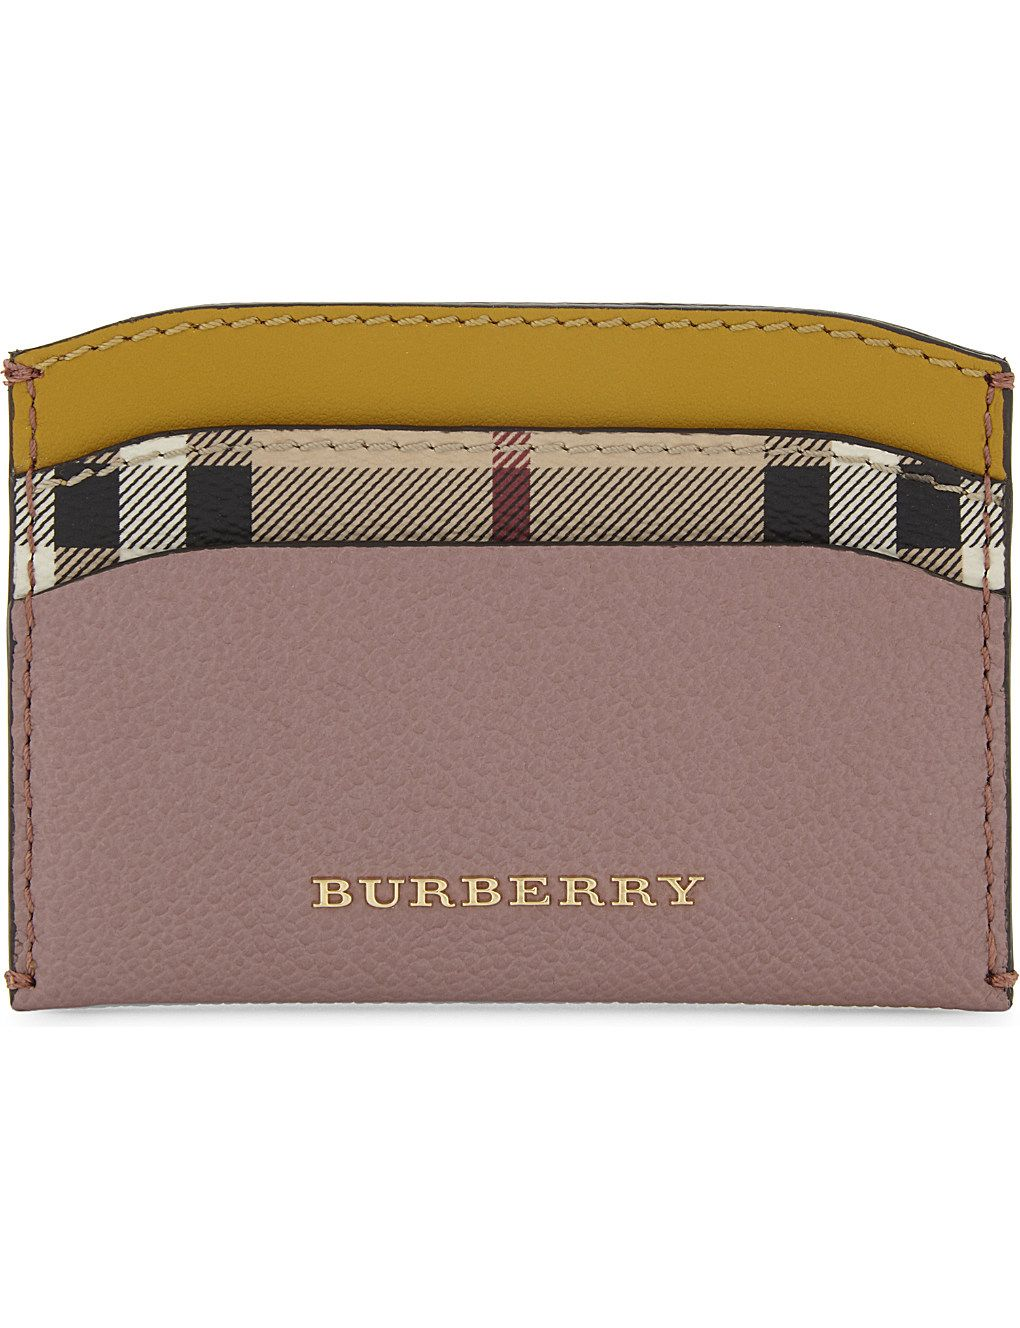 burberry card holders